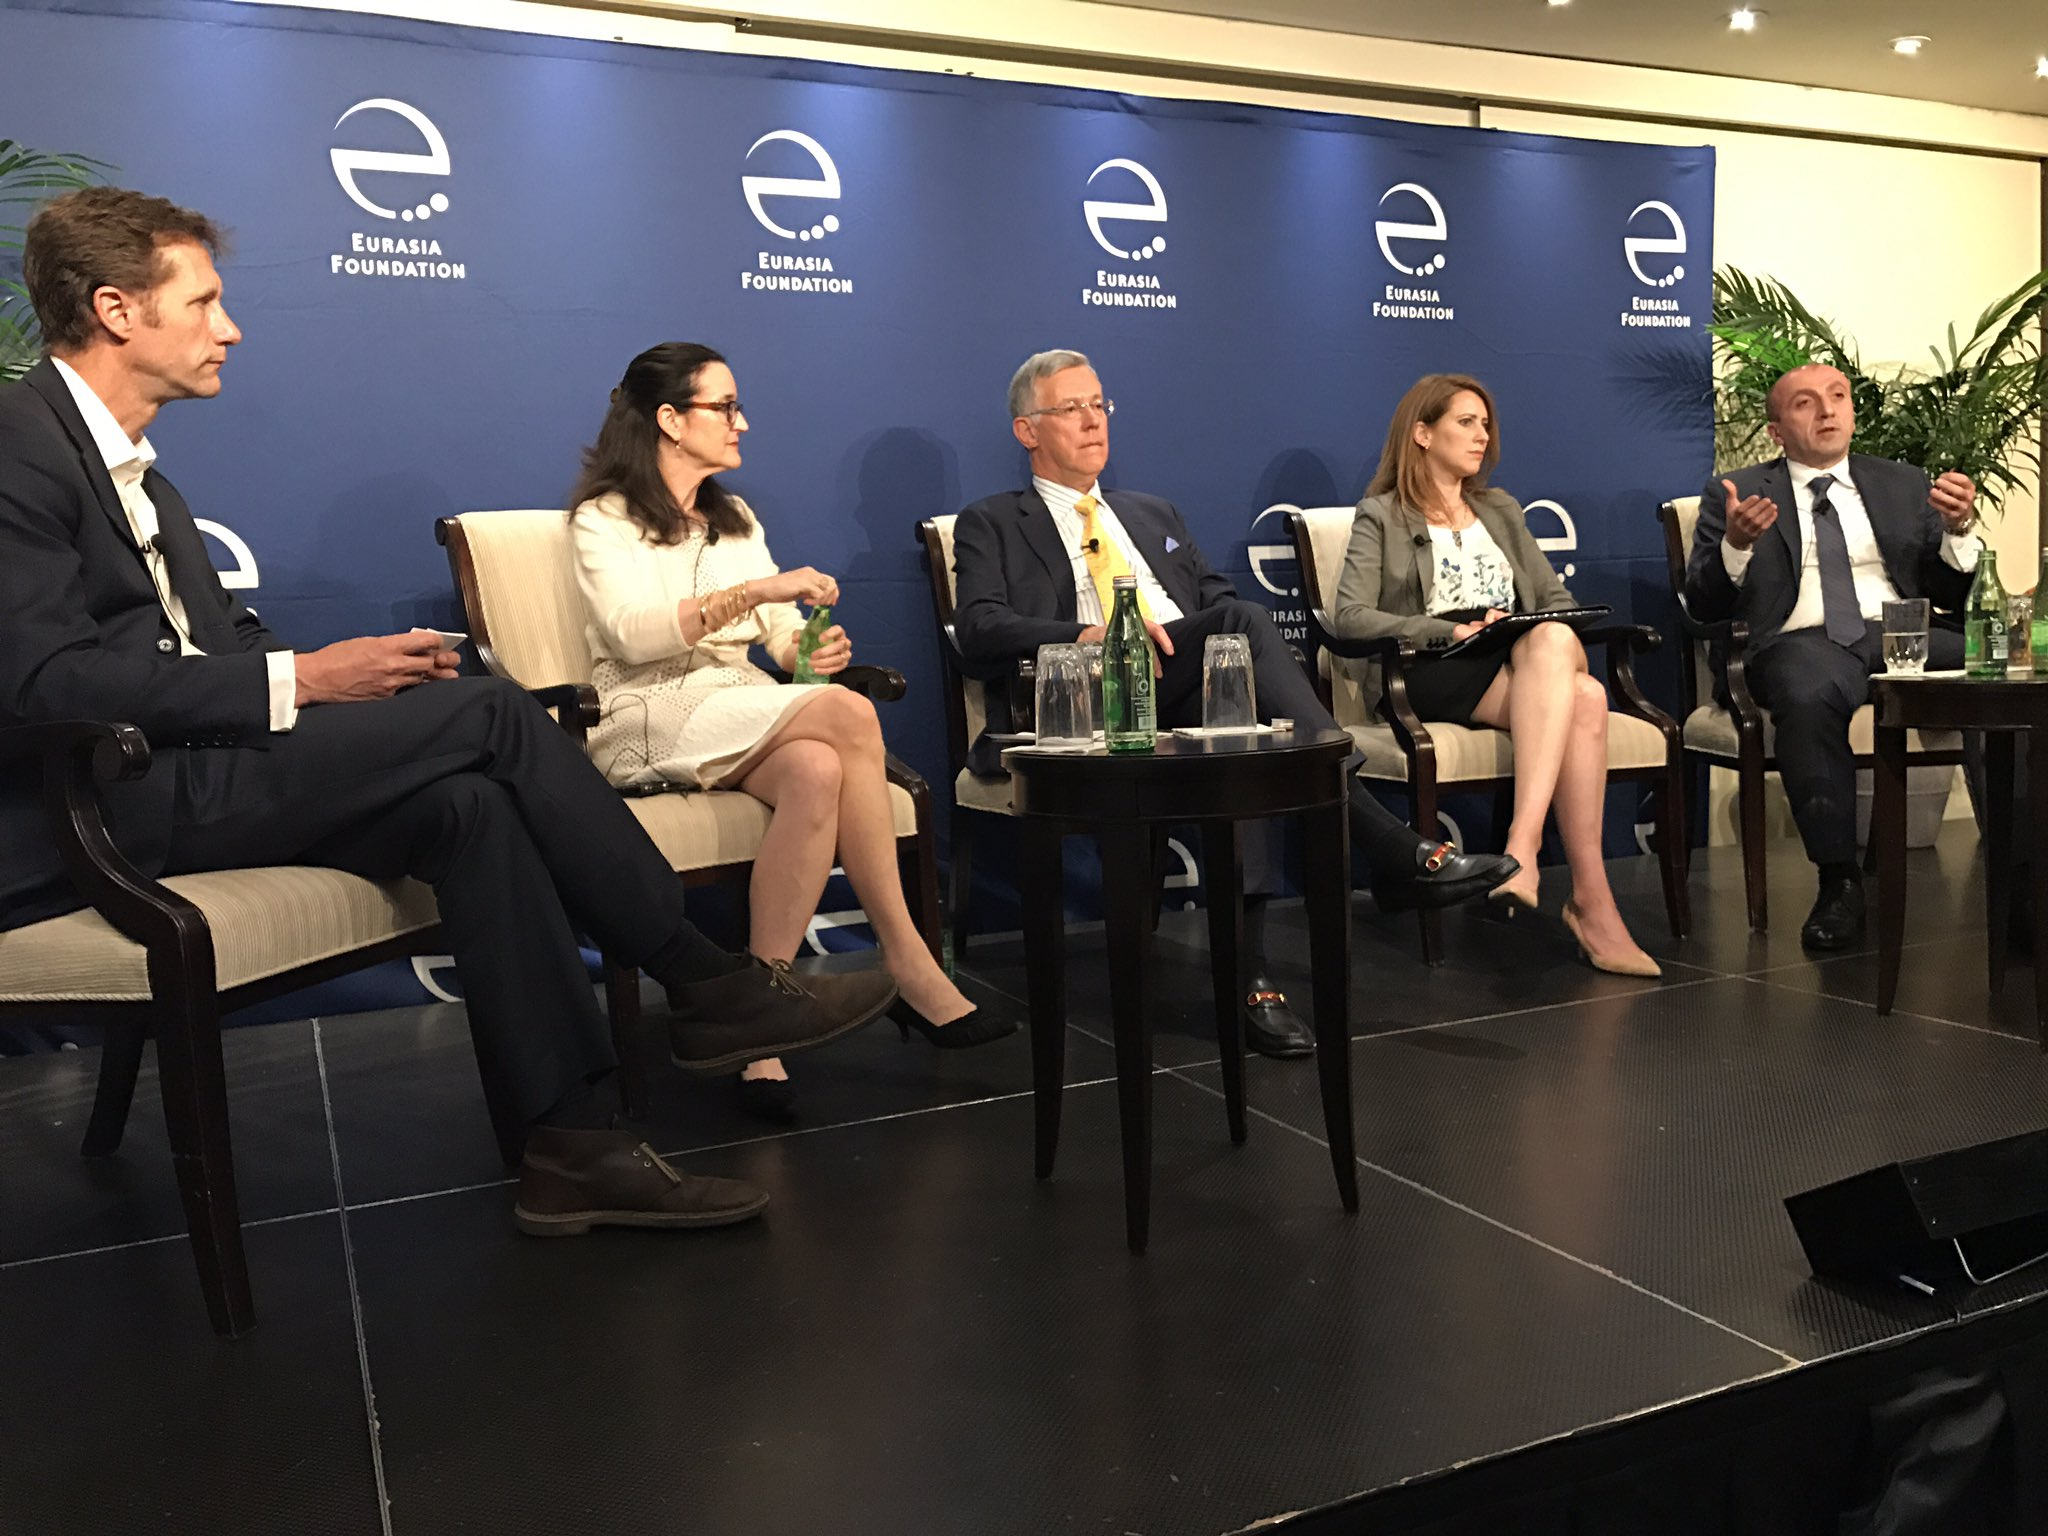 """@G_Tsikolia discussing """"Bridging the Gap: Expanding risk capital 4 Small Businrsses in Eurasia"""" at @EFNetwork moderated by @FrontierMarkets https://t.co/PL9VknsreE"""